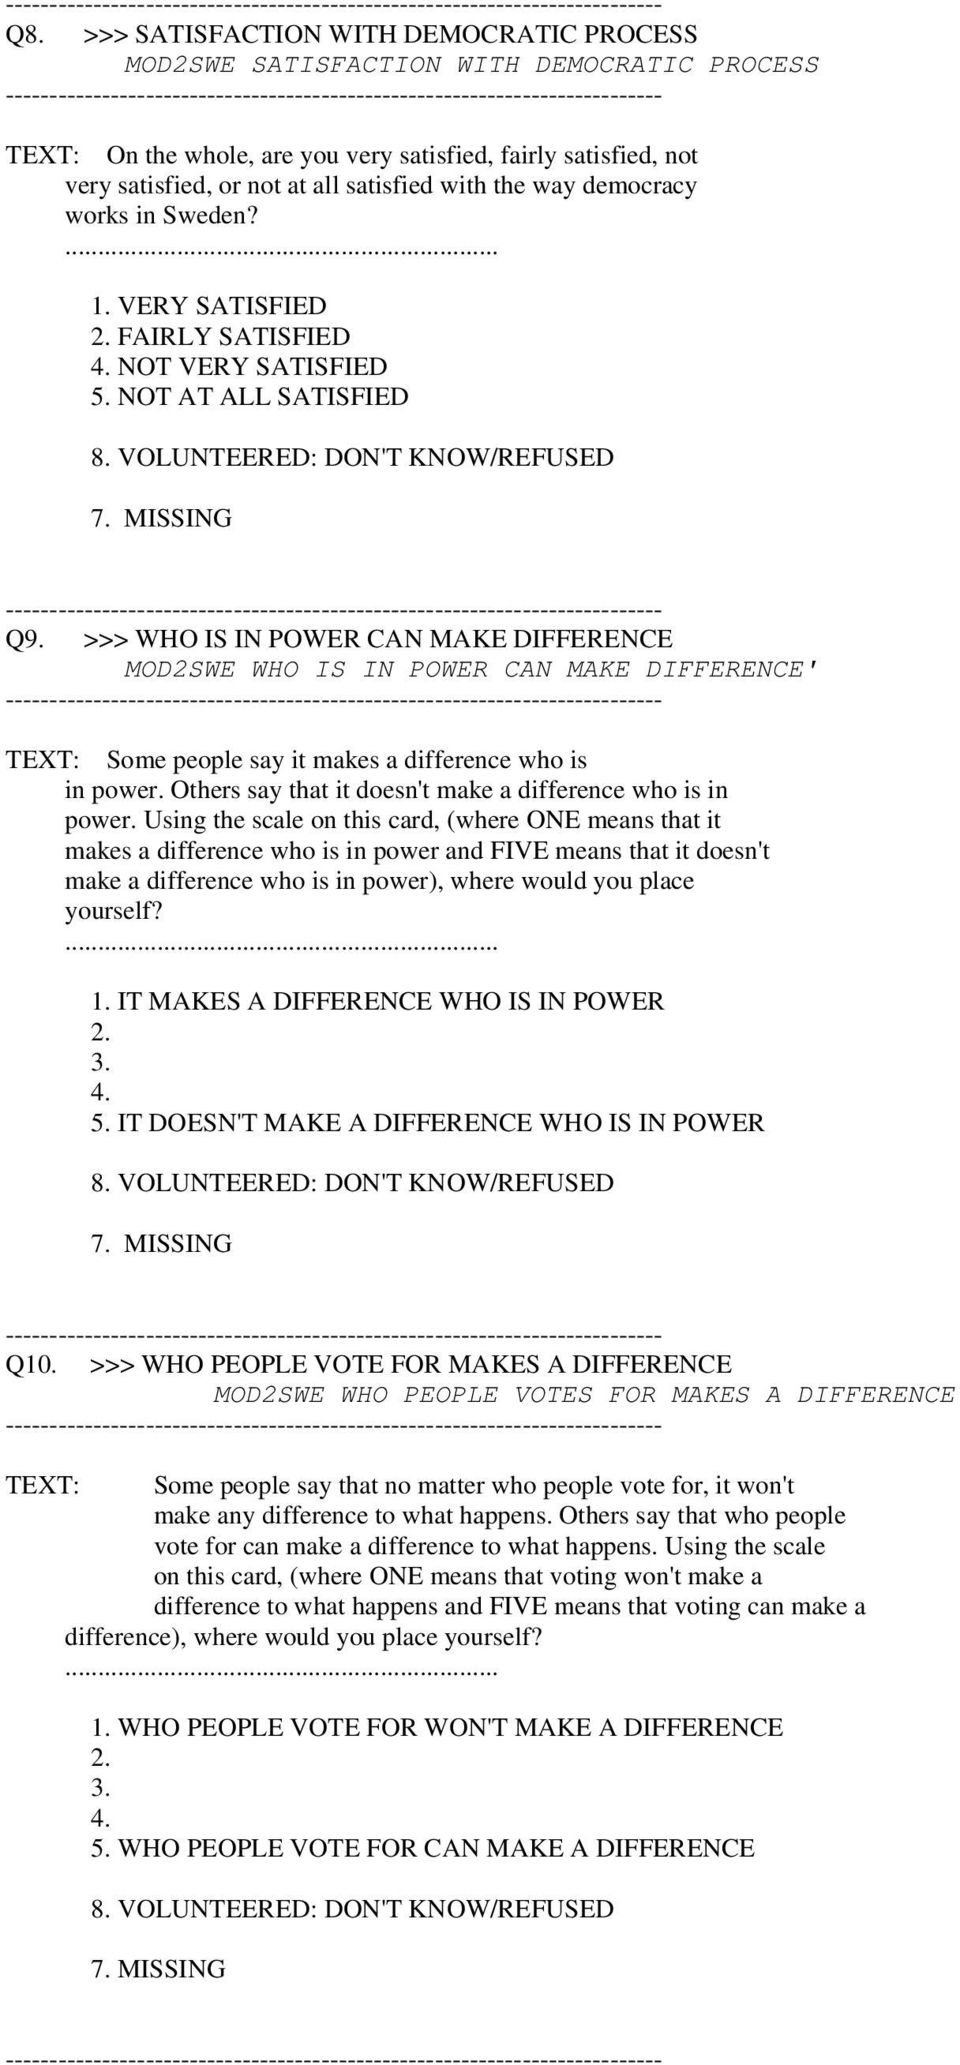 >>> WHO IS IN POWER CAN MAKE DIFFERENCE MOD2SWE WHO IS IN POWER CAN MAKE DIFFERENCE' TEXT: Some people say it makes a difference who is in power.